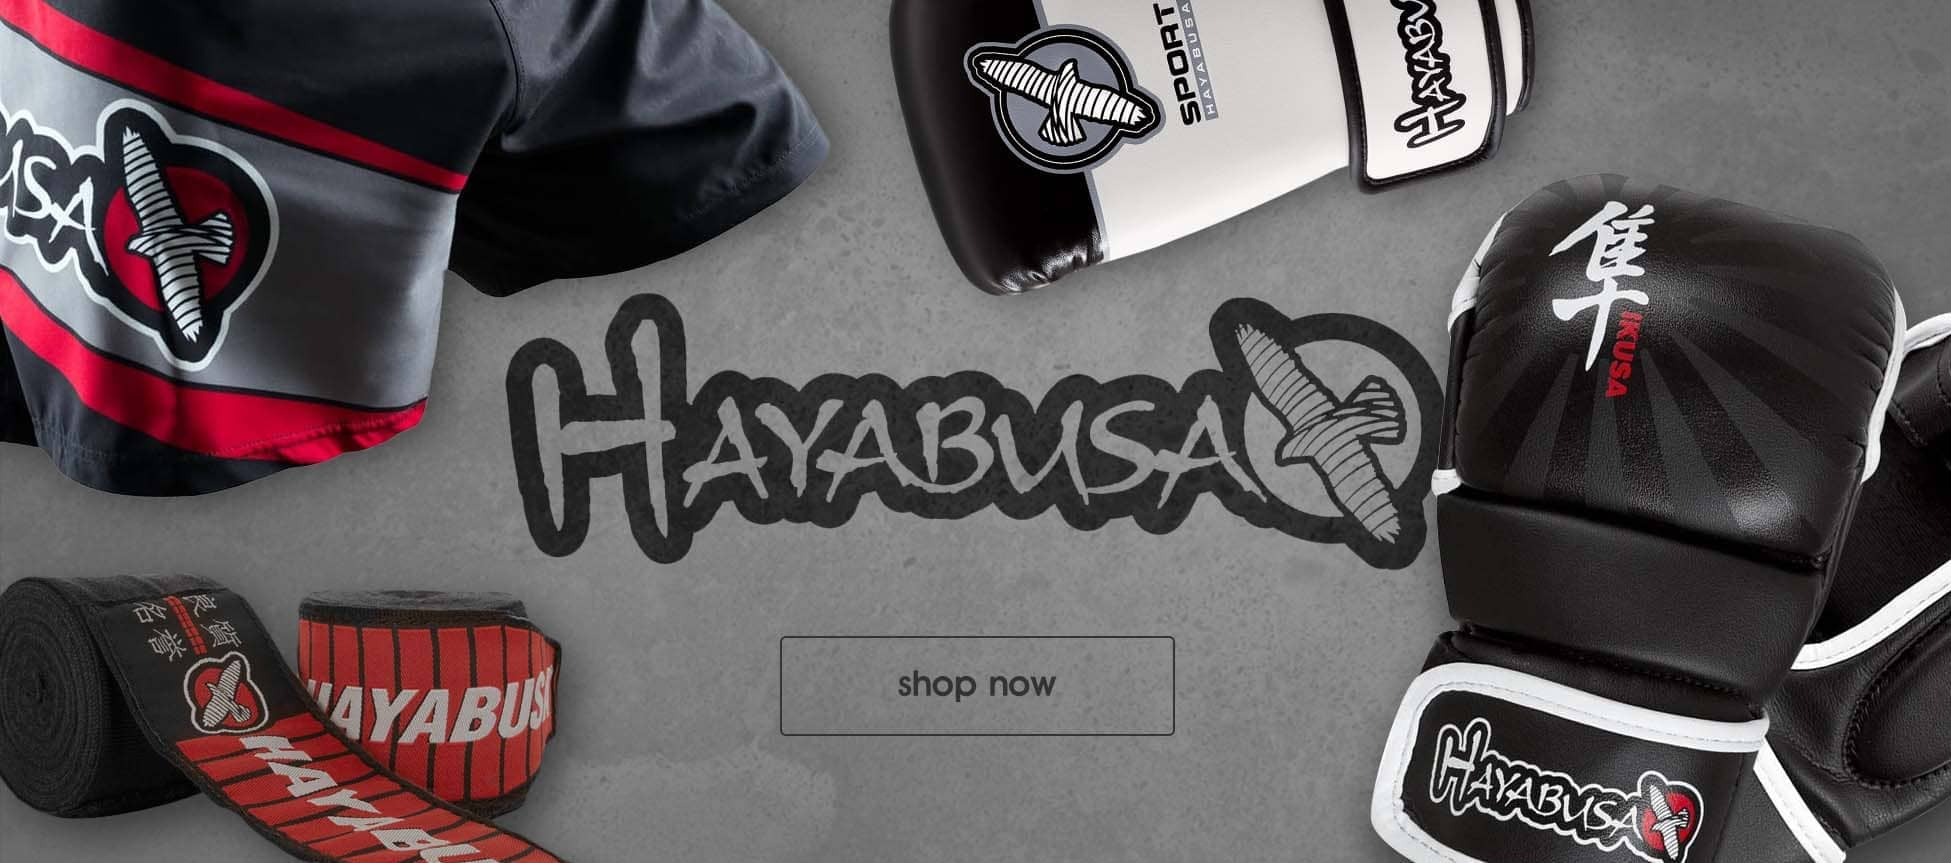 new styles d2faf 8cfe6 Shop Hayabusa Fight Equipment